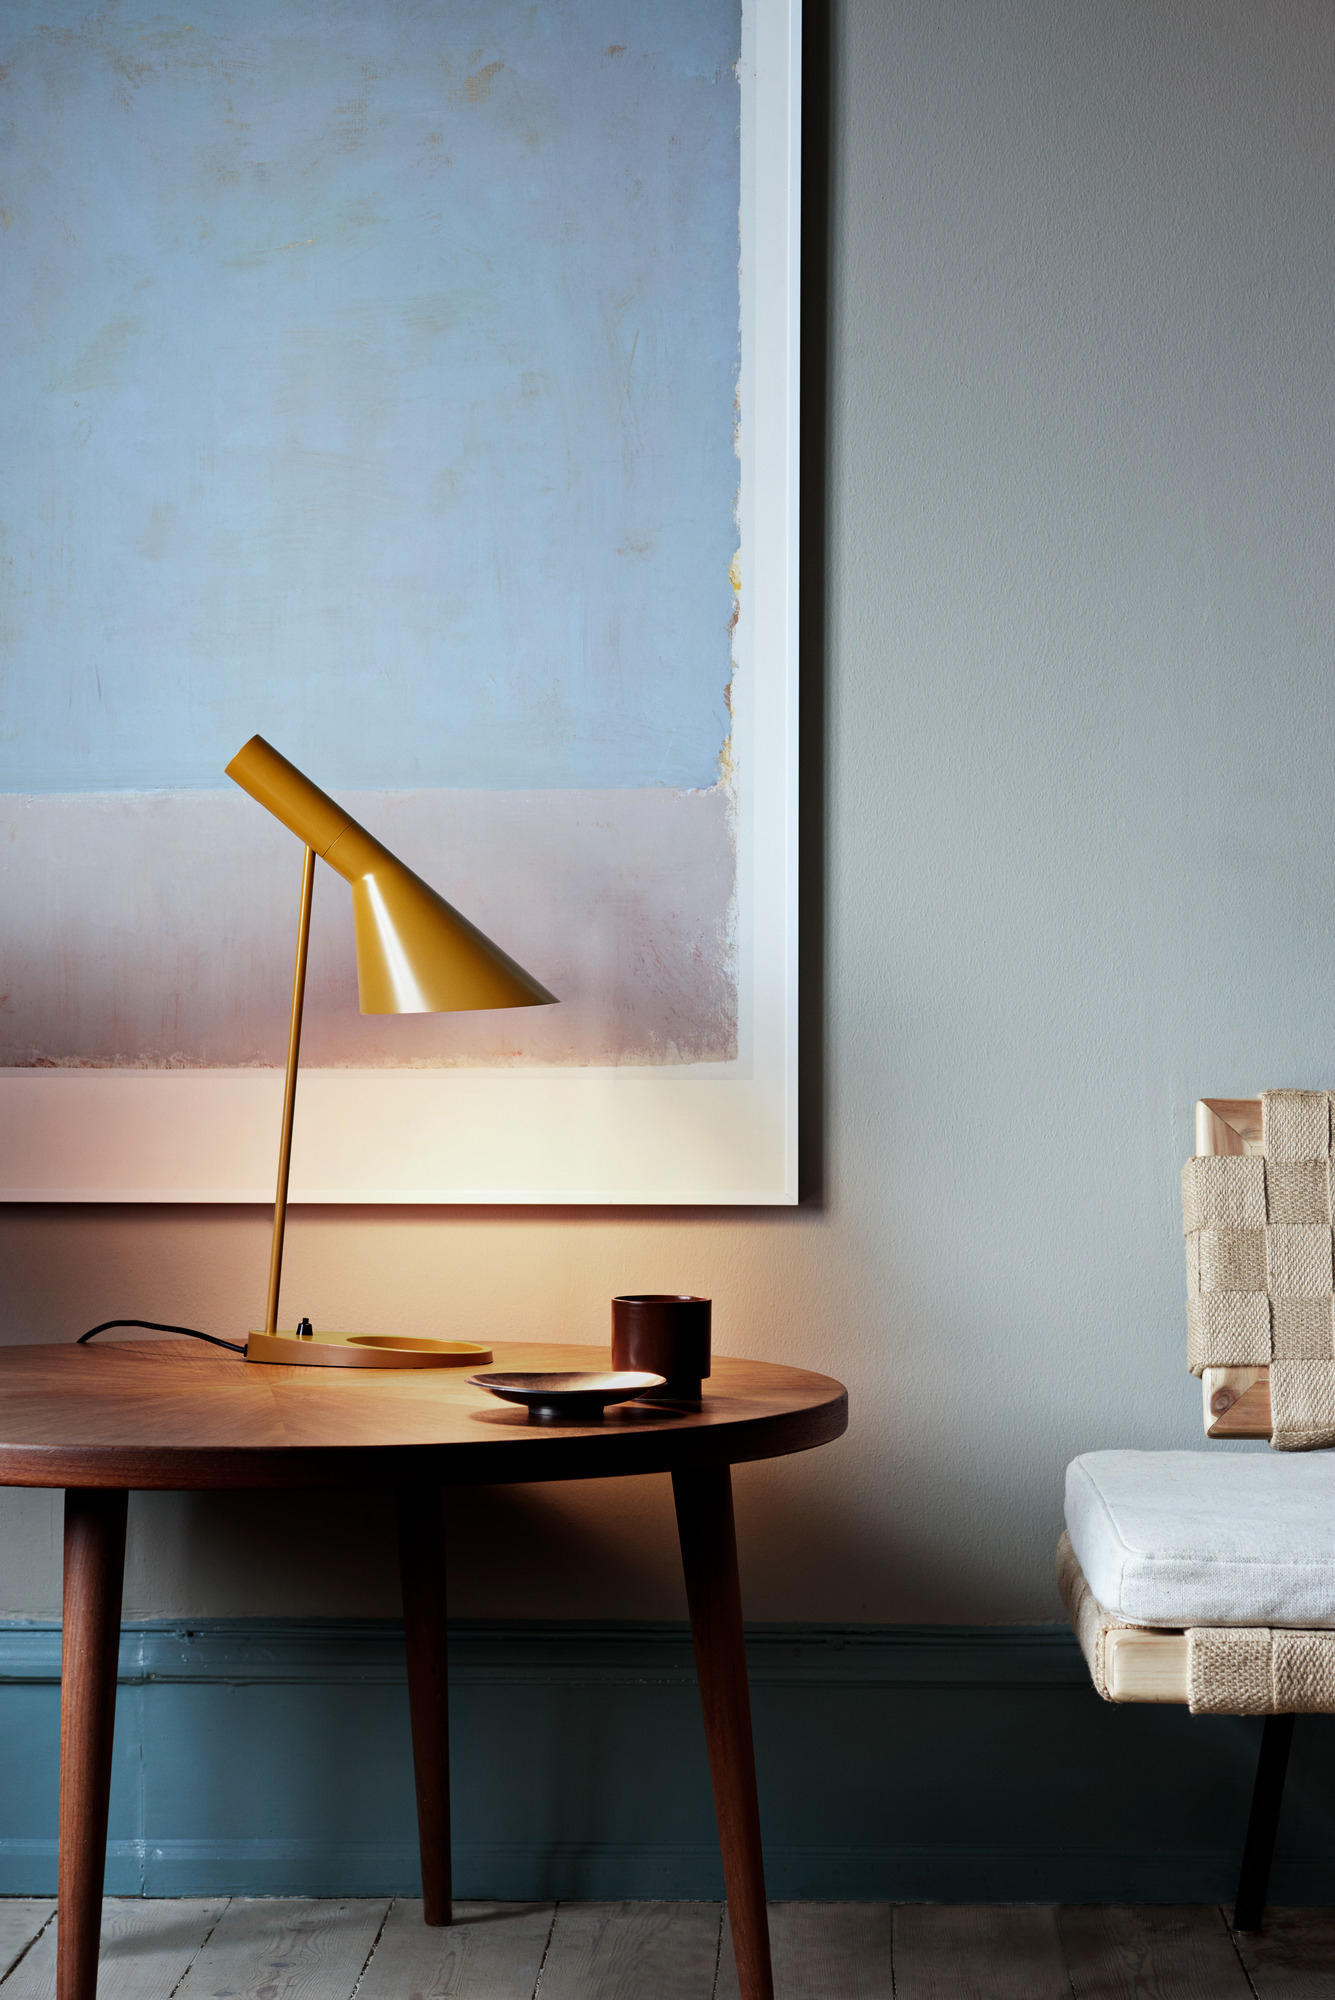 AJ TABLE - Table lights from Louis Poulsen | Architonic